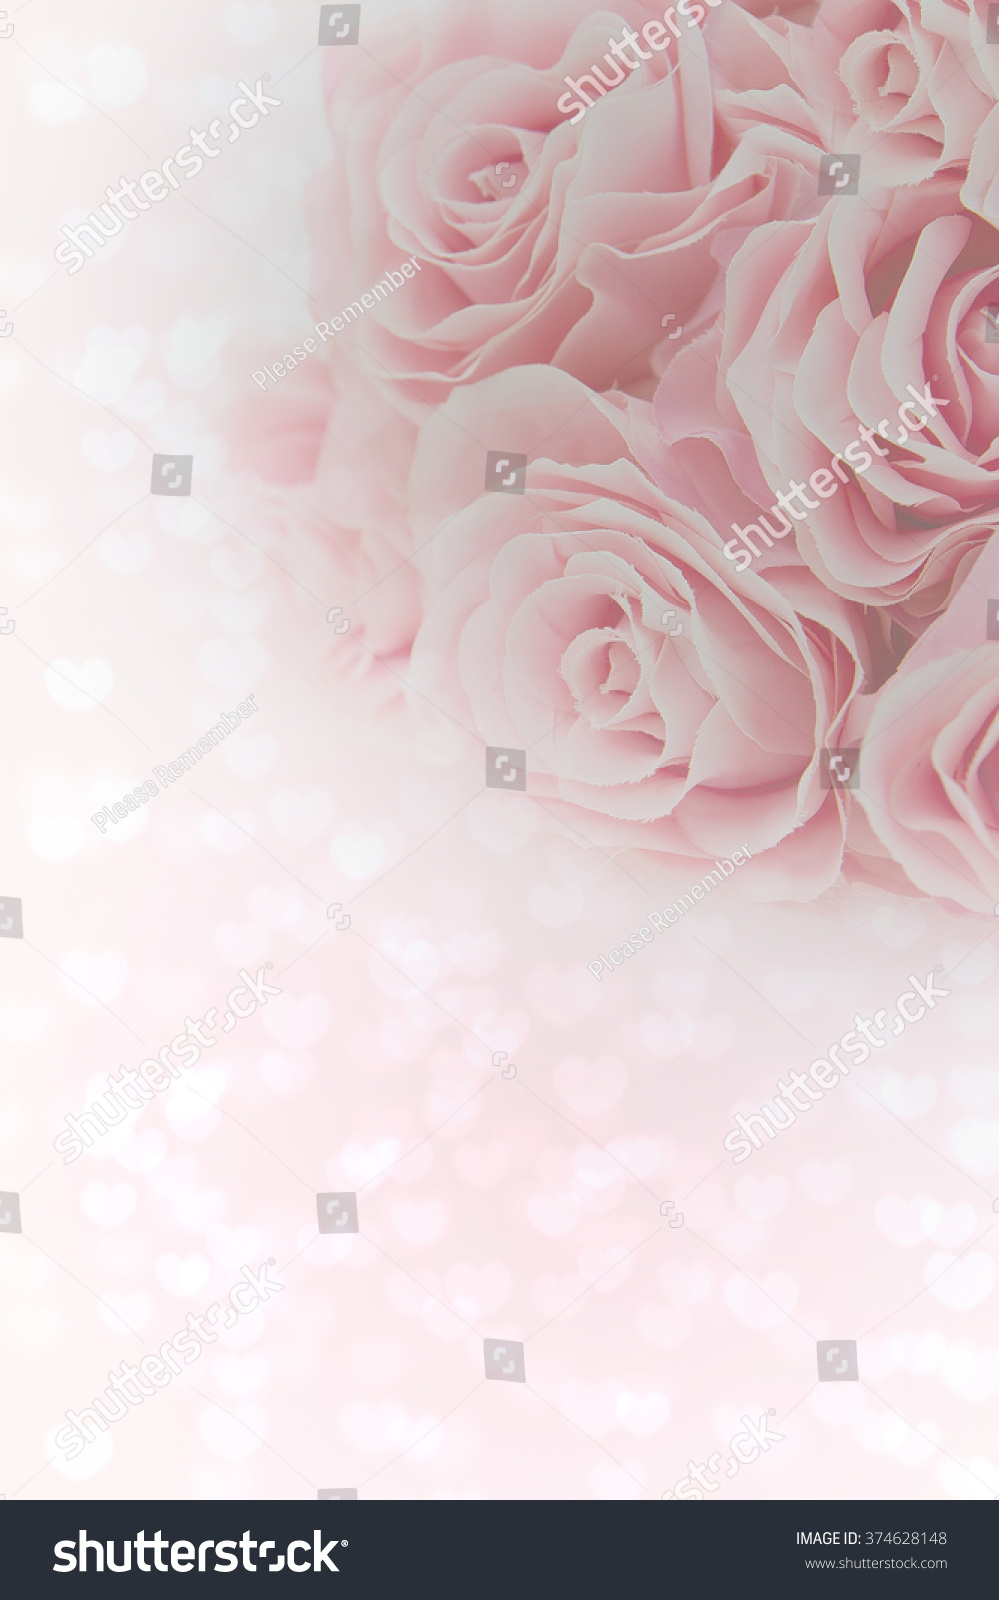 Bouquet Light Pink Roses Heart Background Valentines Stock